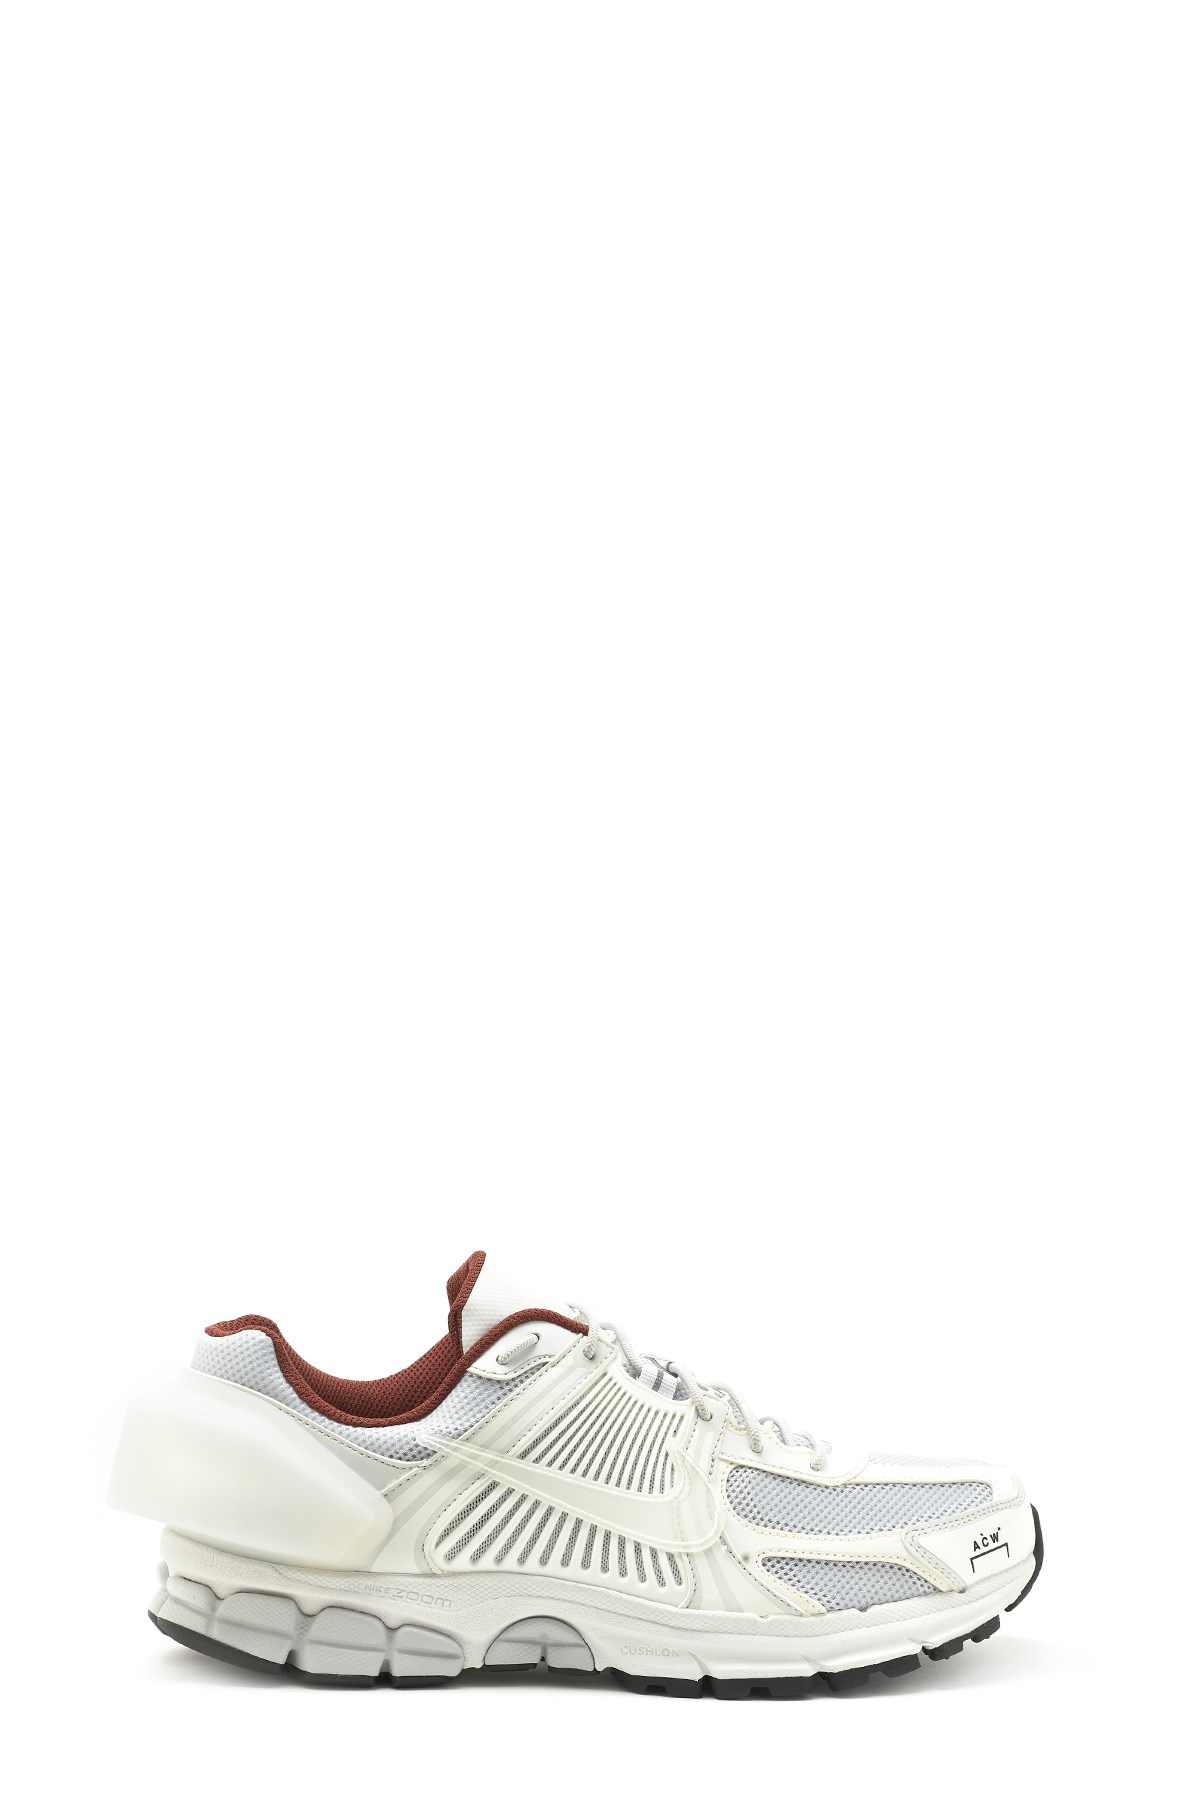 classic fit 95038 5b030 nike Zoom Vomero 5Acw sneakers available on julian-fashion.c